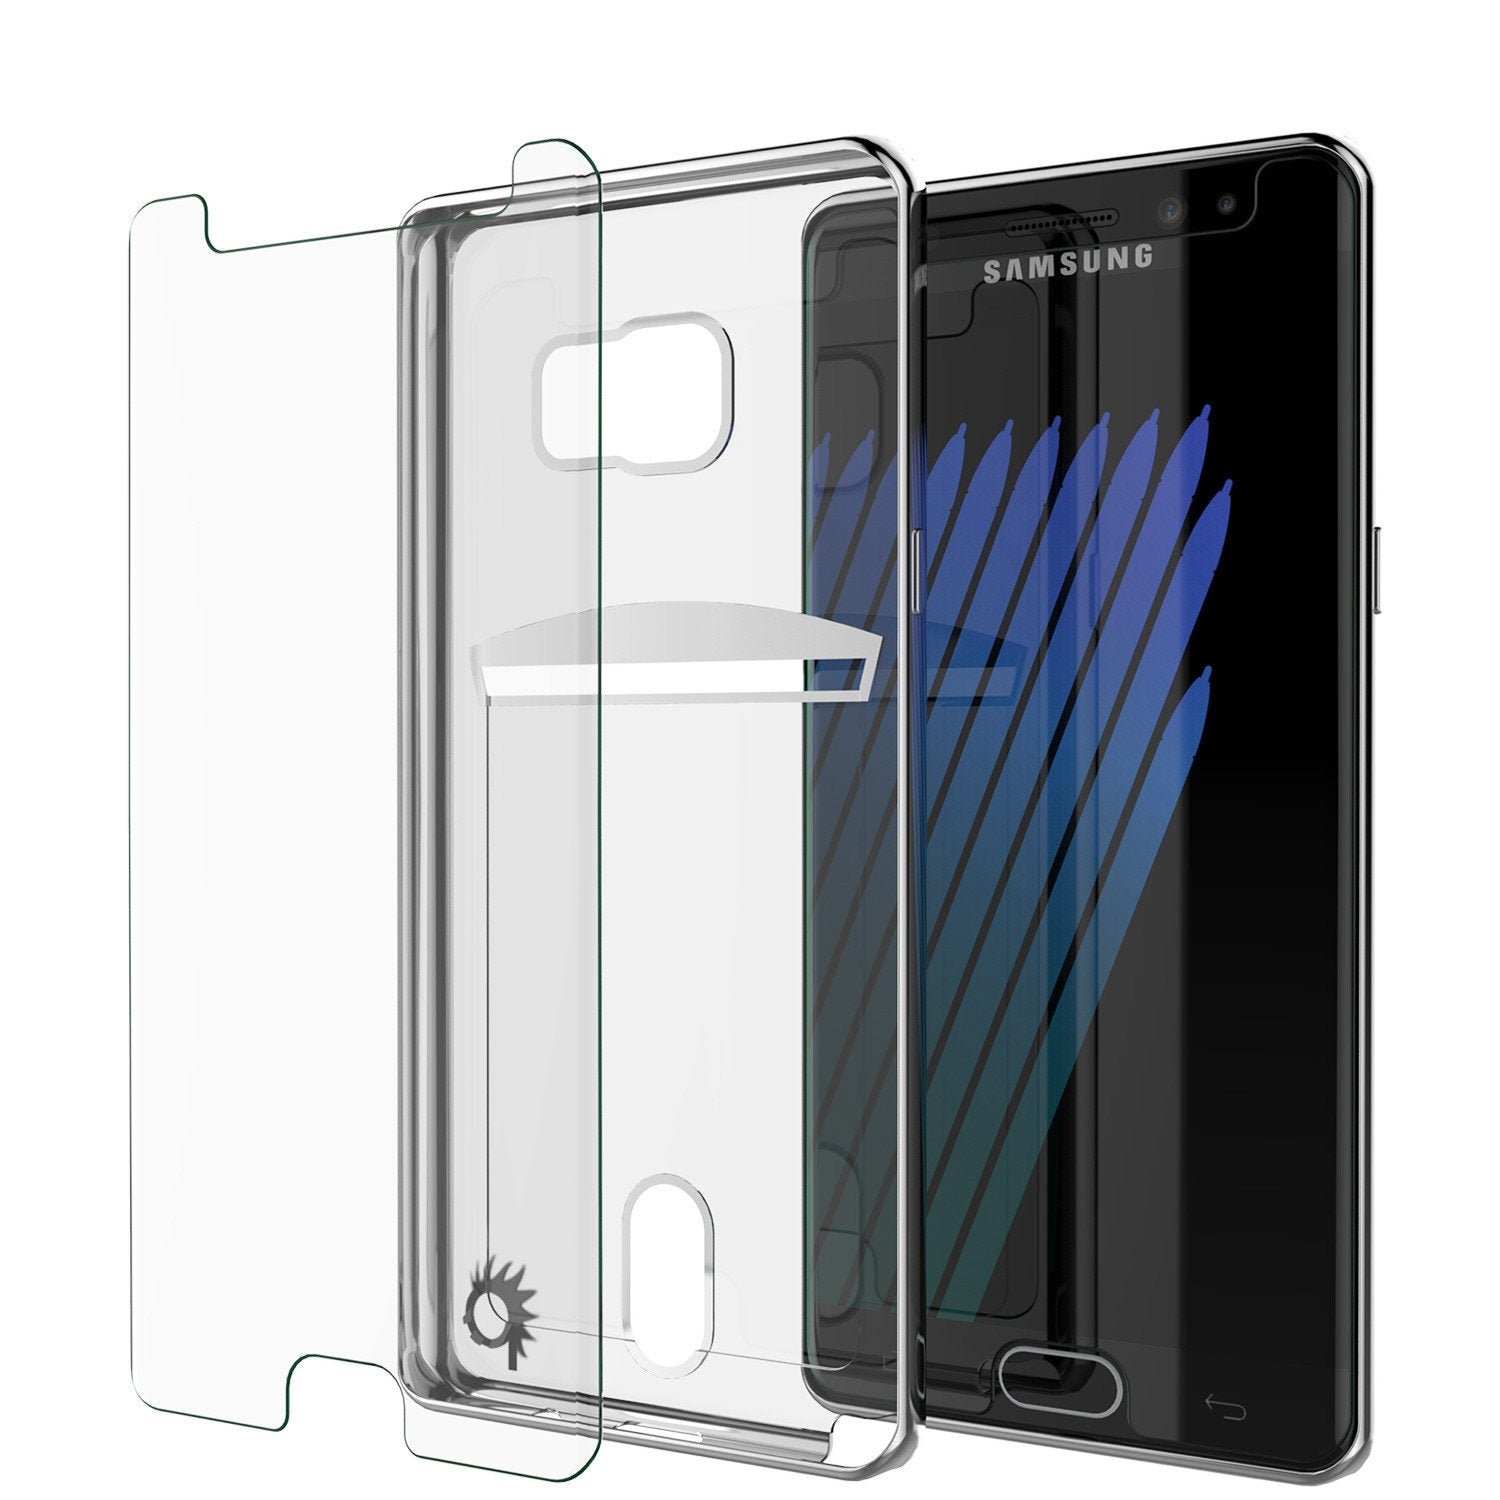 Galaxy Note 7 Case, PUNKCASE® LUCID Silver Series | Card Slot | SHIELD Screen Protector | Ultra fit